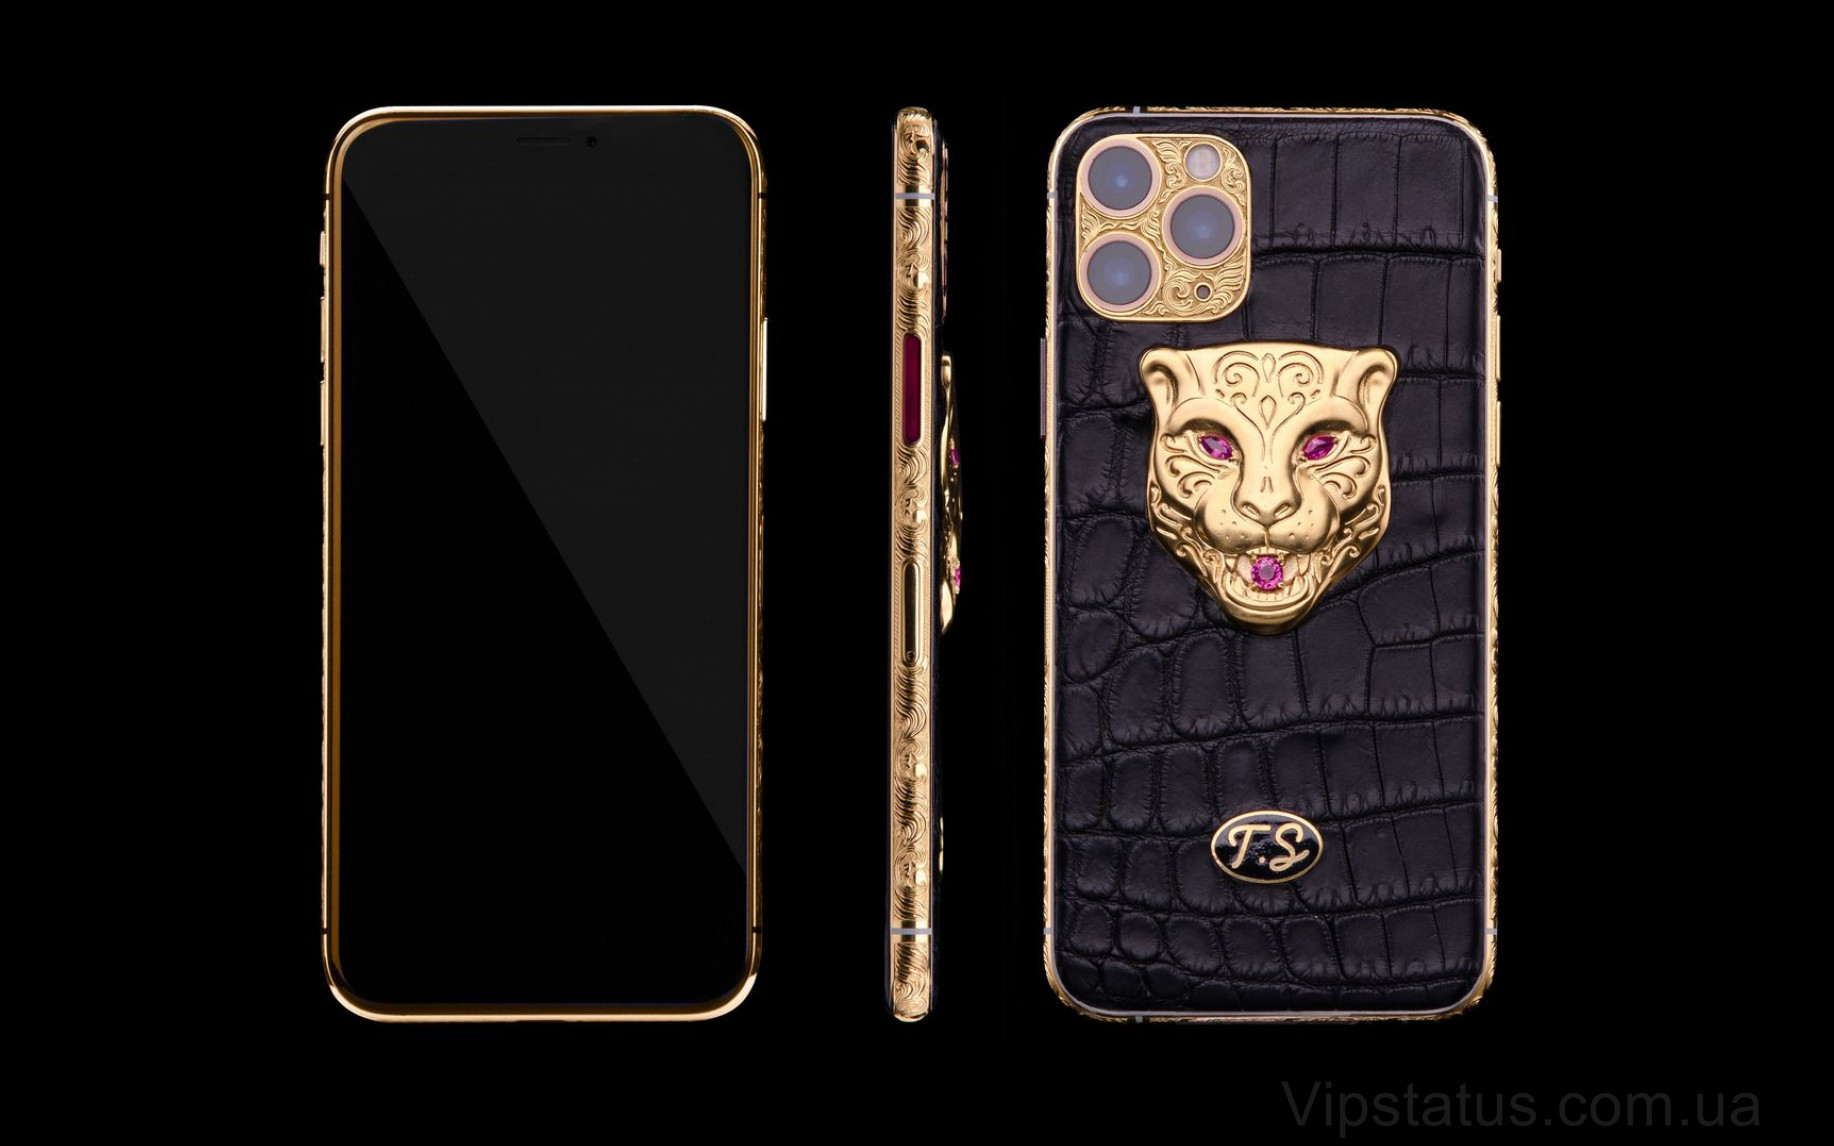 Elite Gucci Tiger IPHONE 11 PRO 512 GB Gucci Tiger IPHONE 11 PRO 512 GB image 6